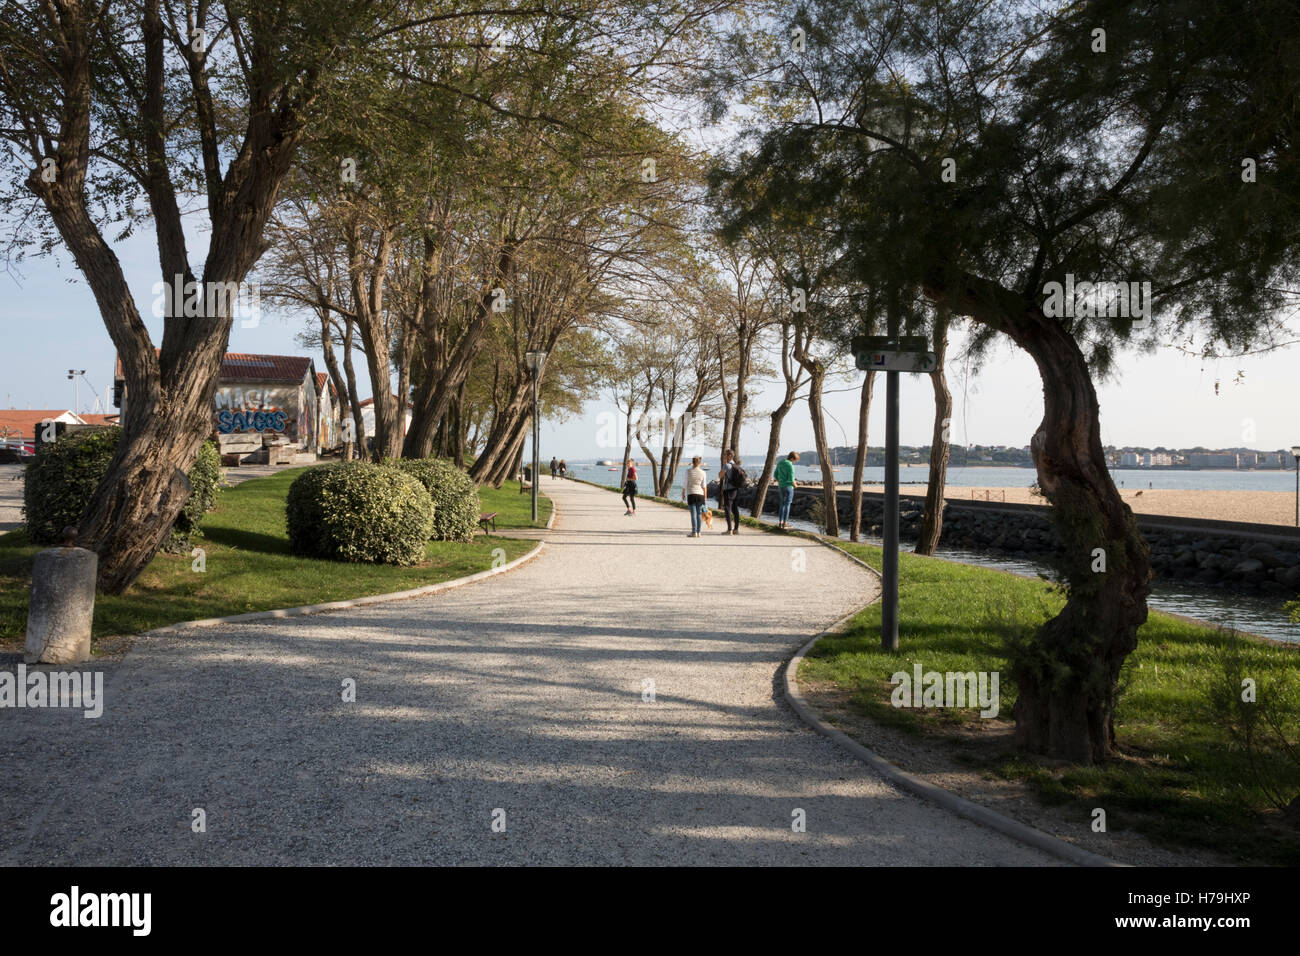 Socoa, people walking on new pathway in port area Stock Photo